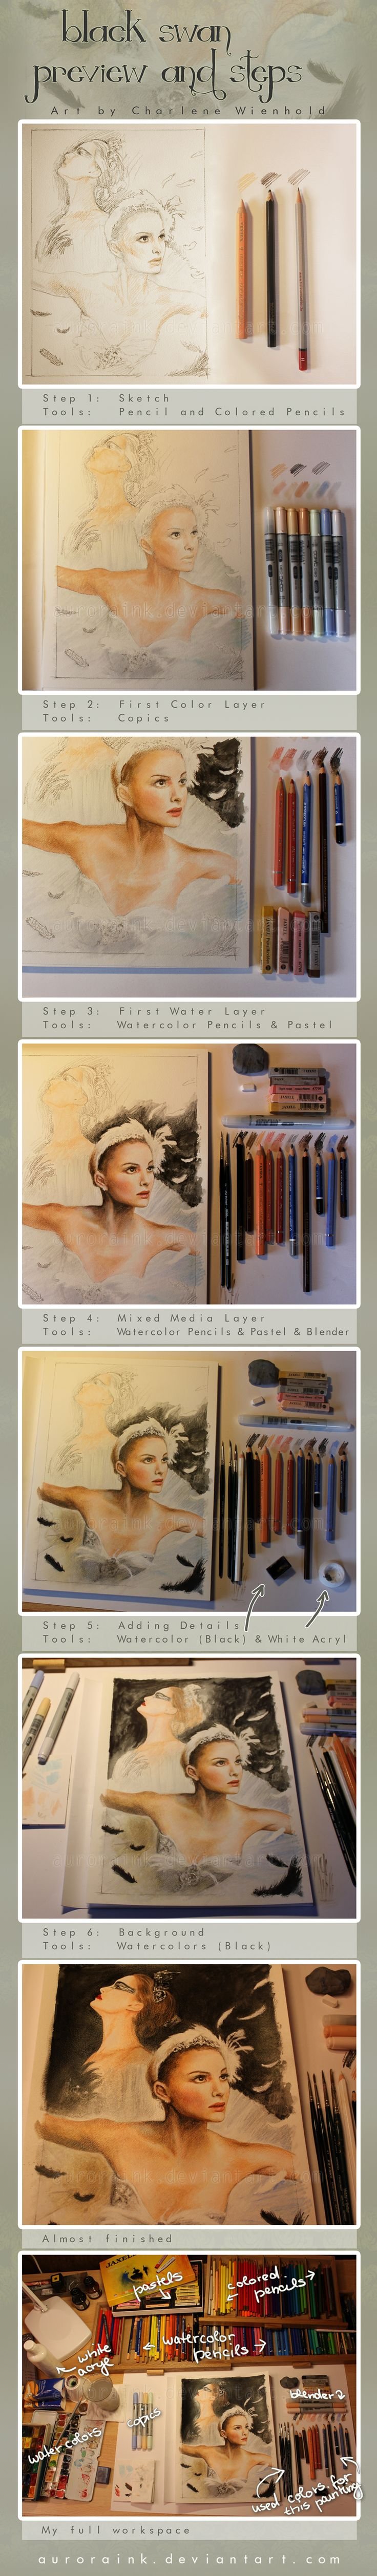 An excellent example of how one can combine various tools and media types to create a work of art. This example uses pencil crayons, copics, pastels and watercolours.